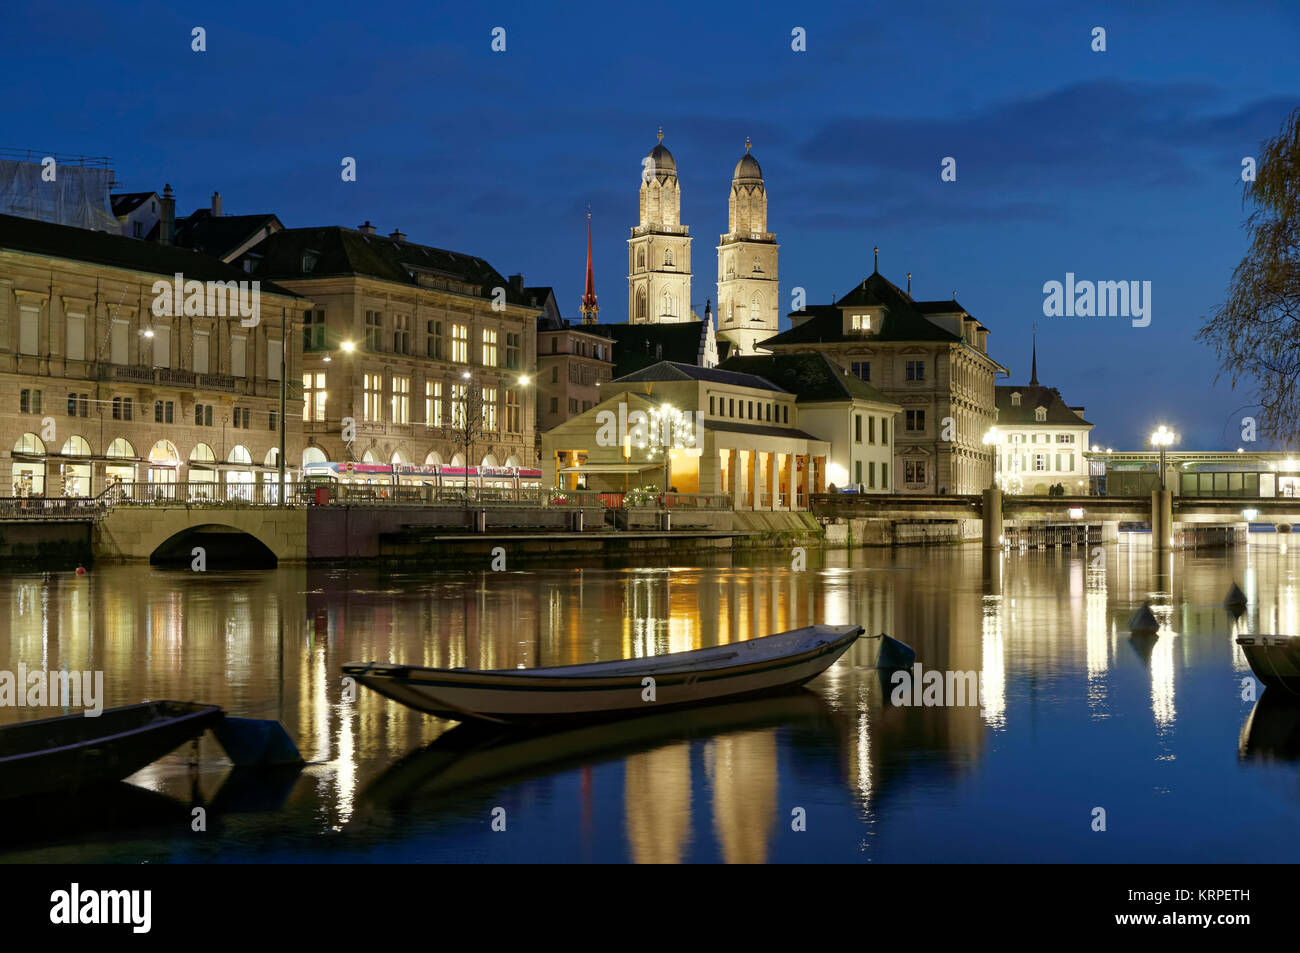 River Limmat, Grossmunster, Zurich, Switzerland - Stock Image